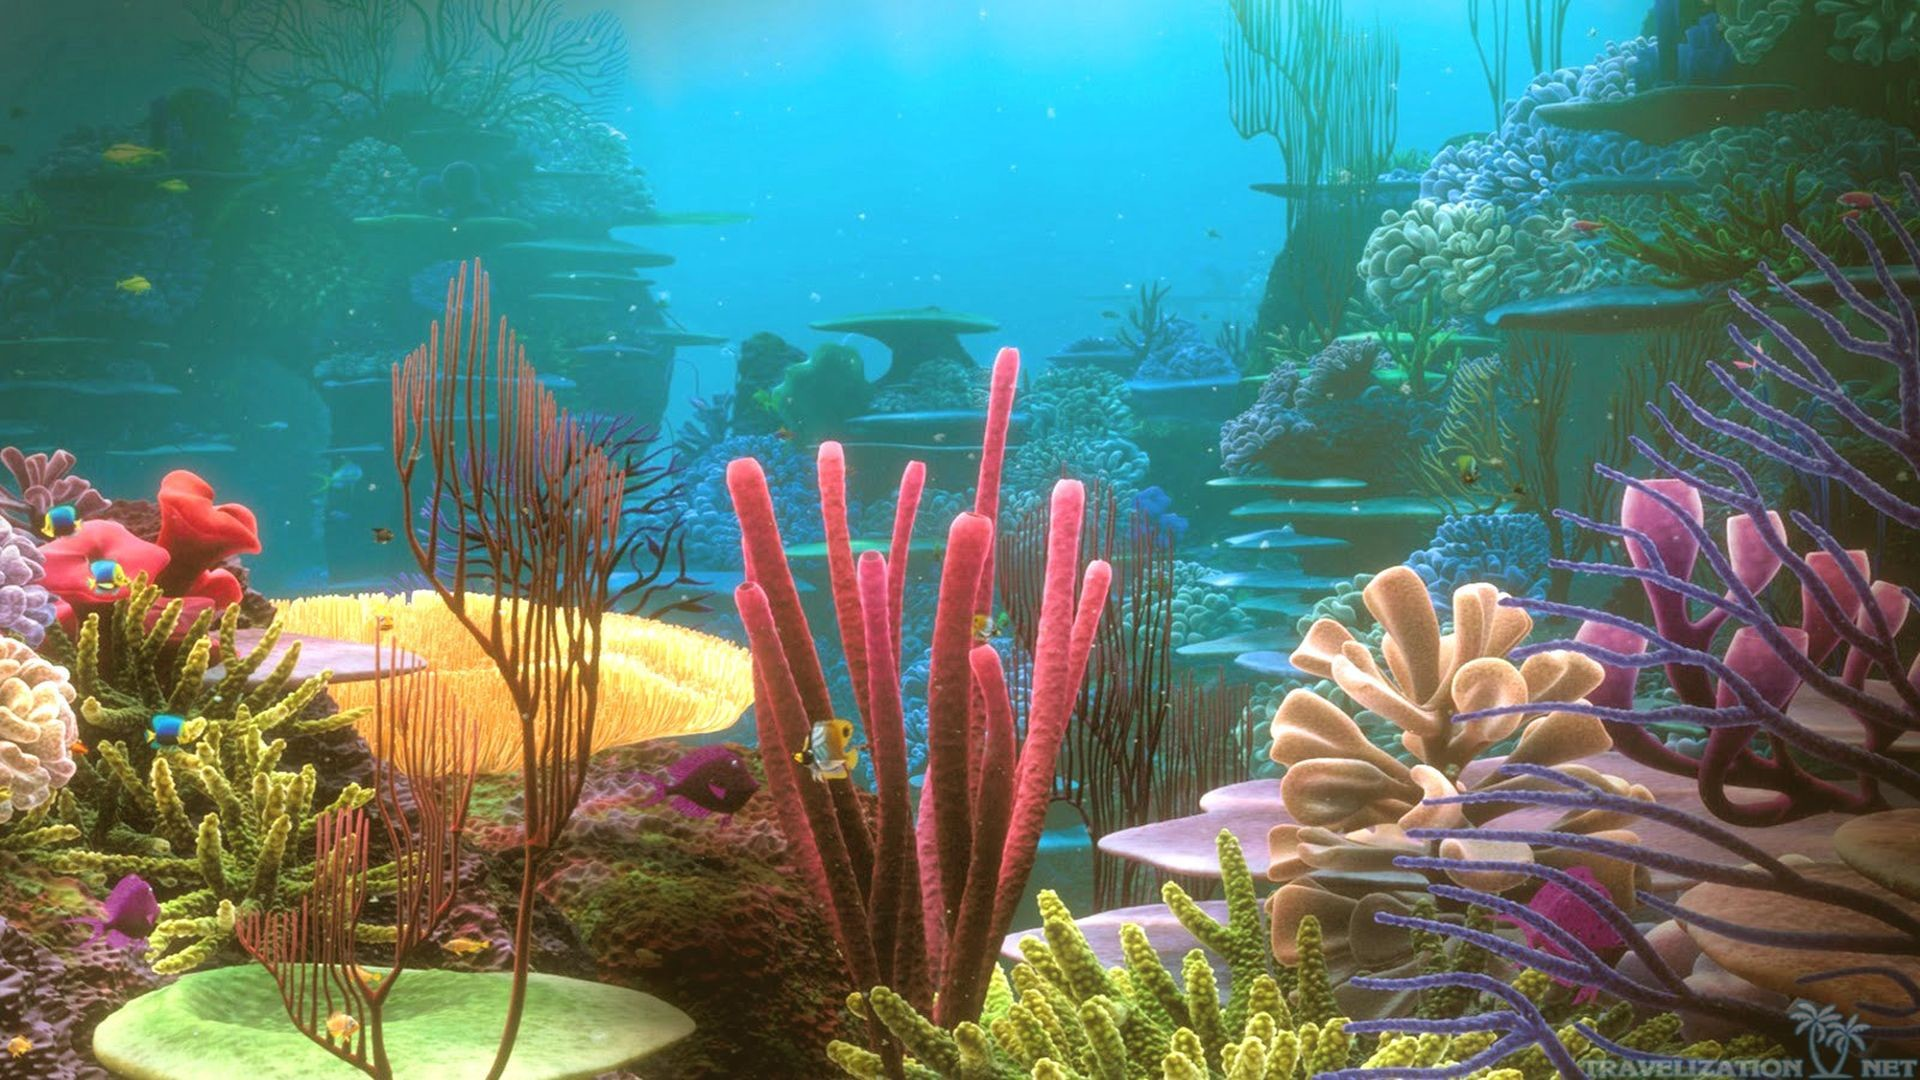 1920x1080 Awesome Coral Reef HD Wallpaper Free Download 1920×1080 Coral Reef Images  Wallpapers (41